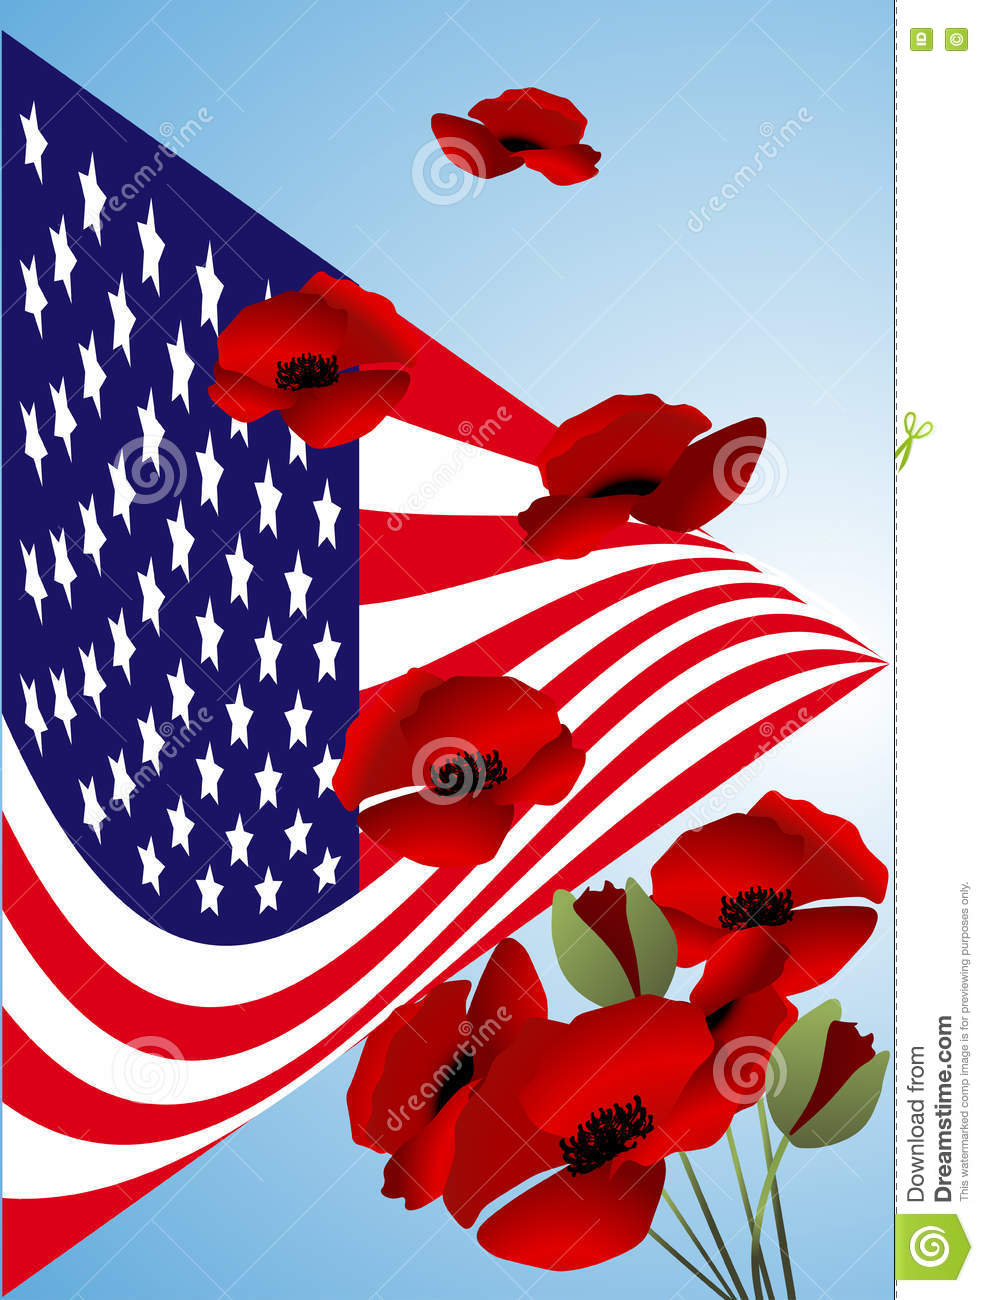 Beautiful illustration by memorial day usa stock vector illustration background with symbols of usa and poppies day publicscrutiny Gallery